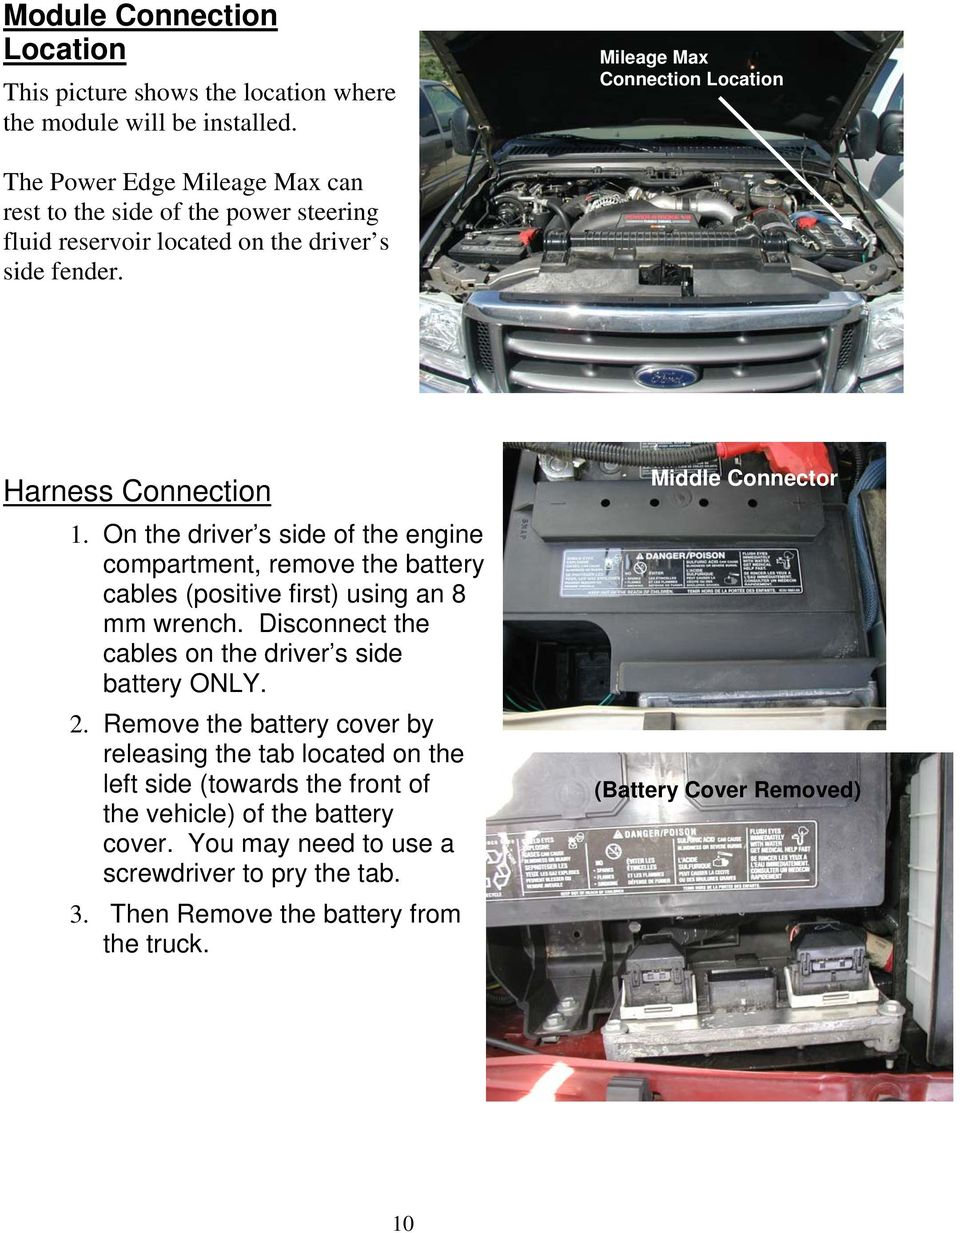 On the driver s side of the engine compartment, remove the battery cables (positive first) using an 8 mm wrench. Disconnect the cables on the driver s side battery ONLY. 2.